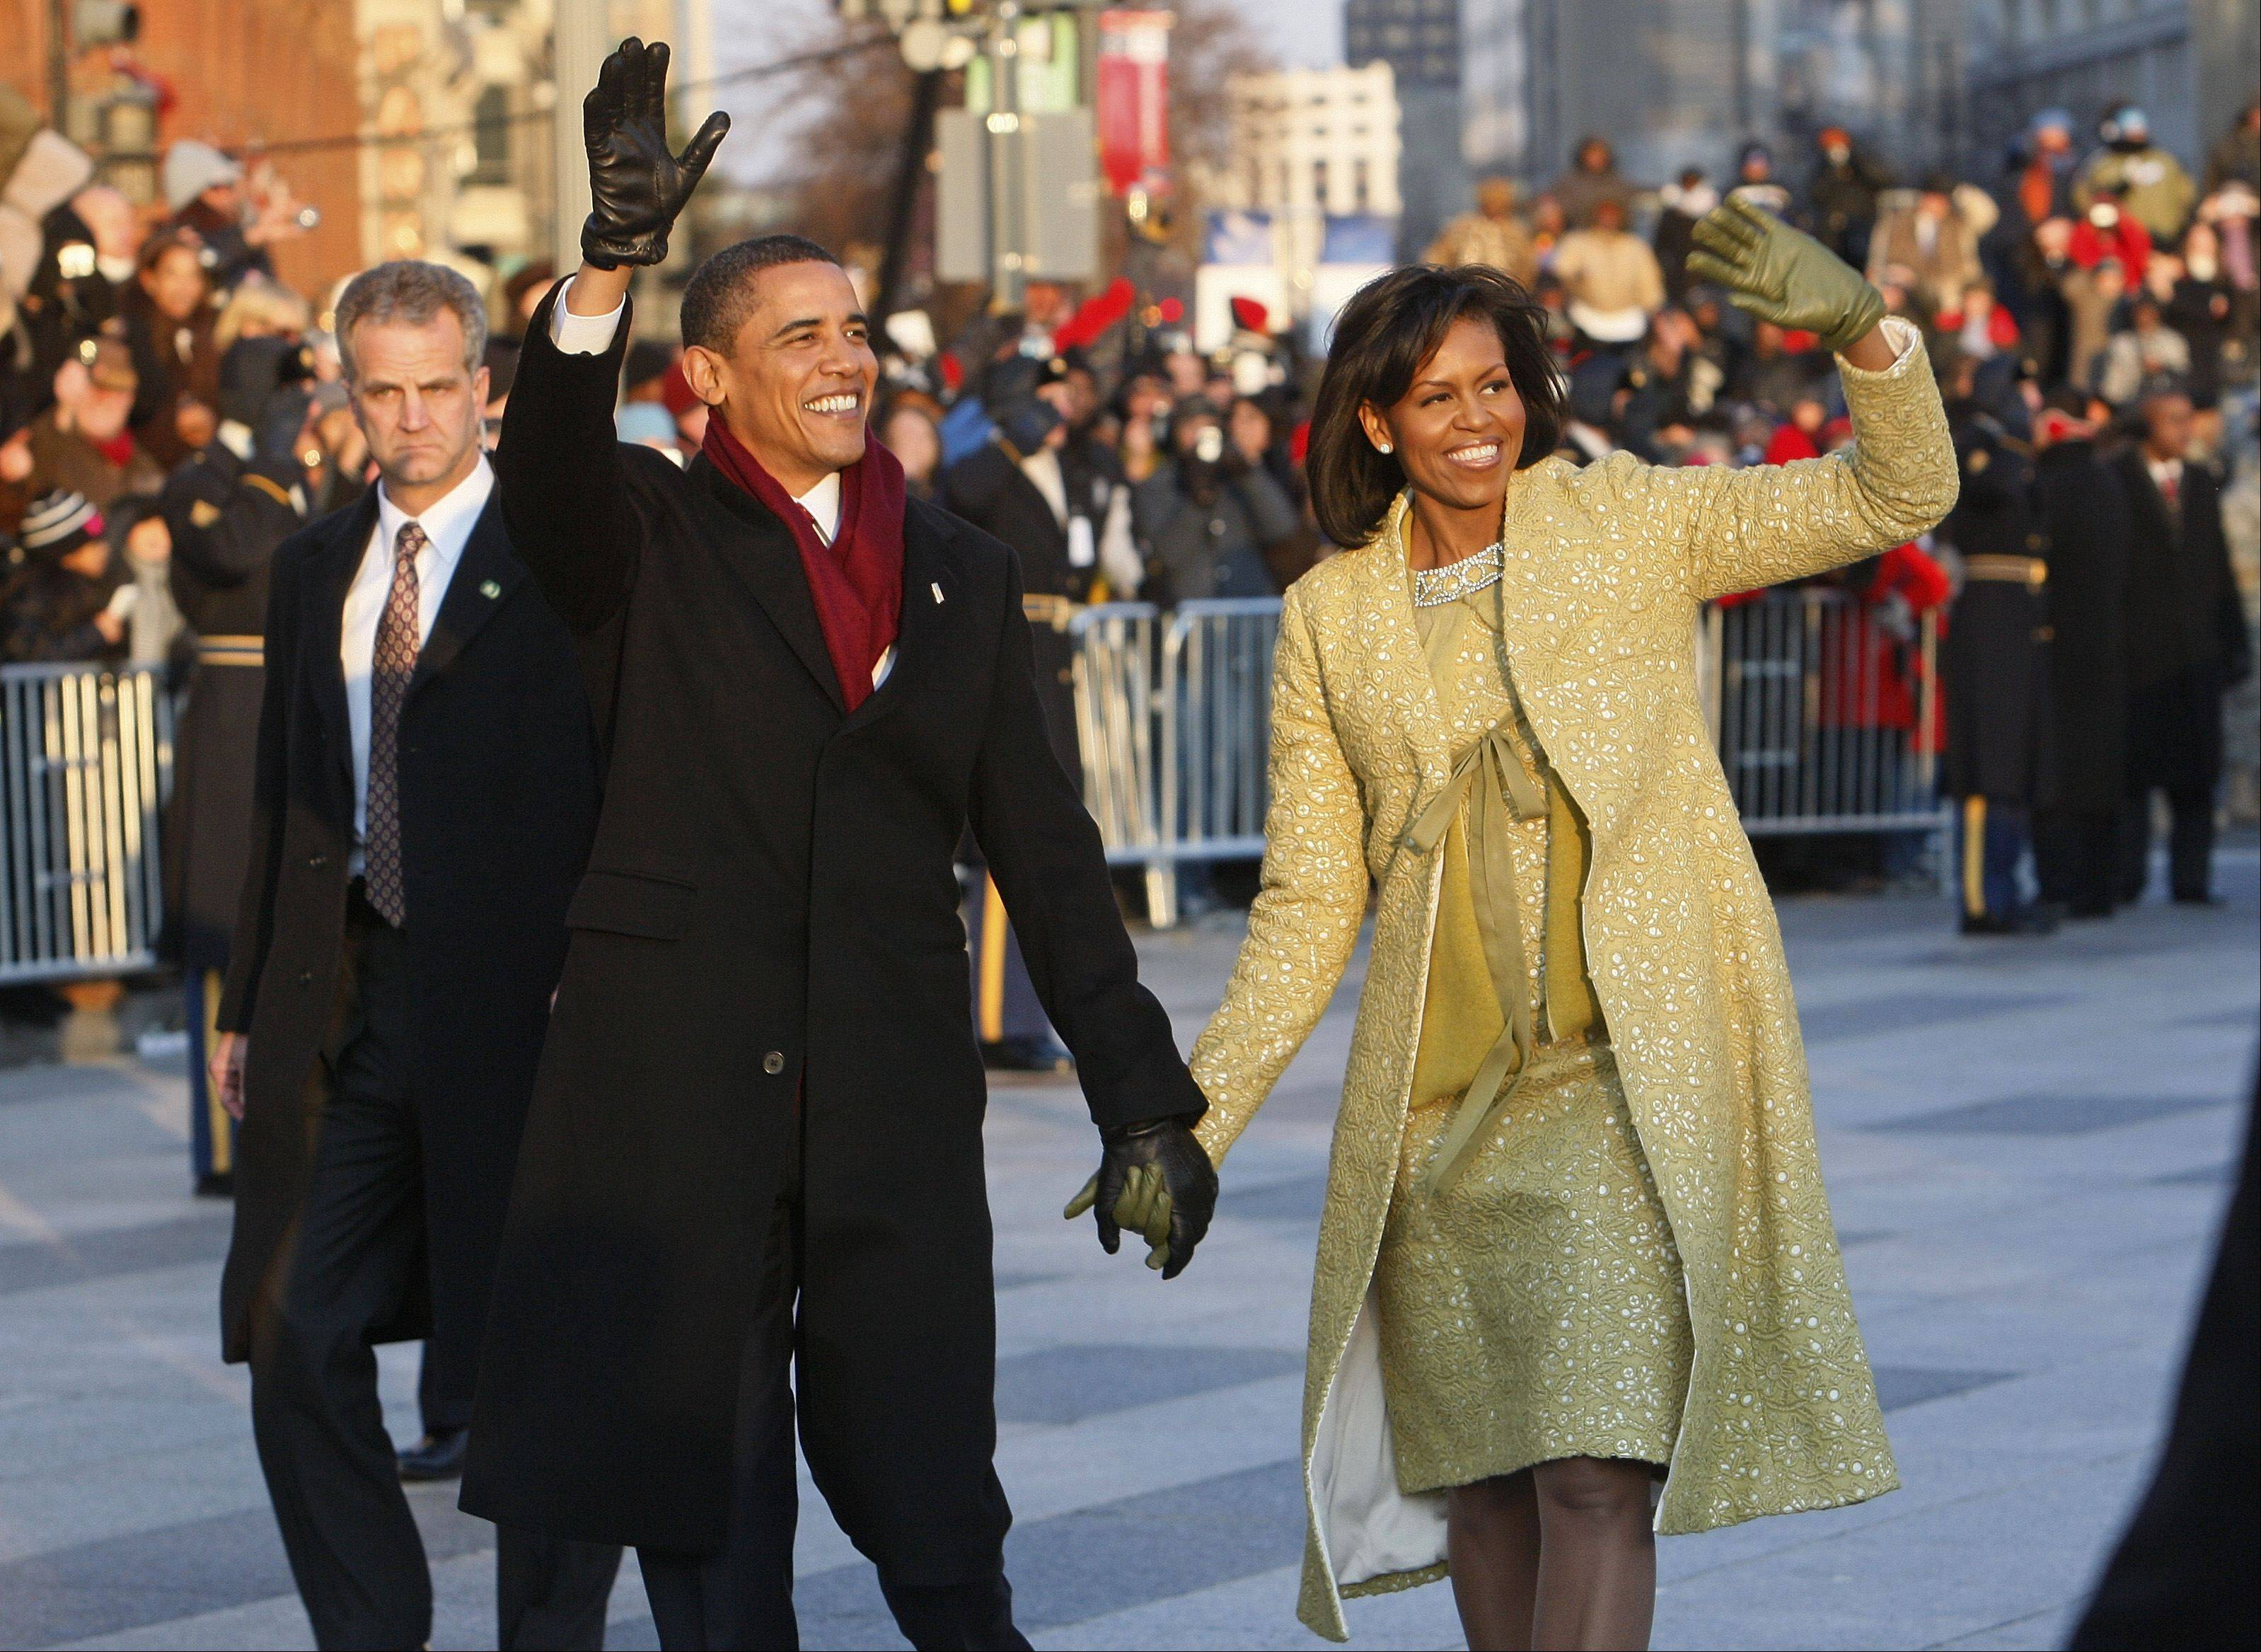 President Barack Obama and first lady Michelle Obama walked the inaugural parade route in Washington on Jan. 20, 2009.